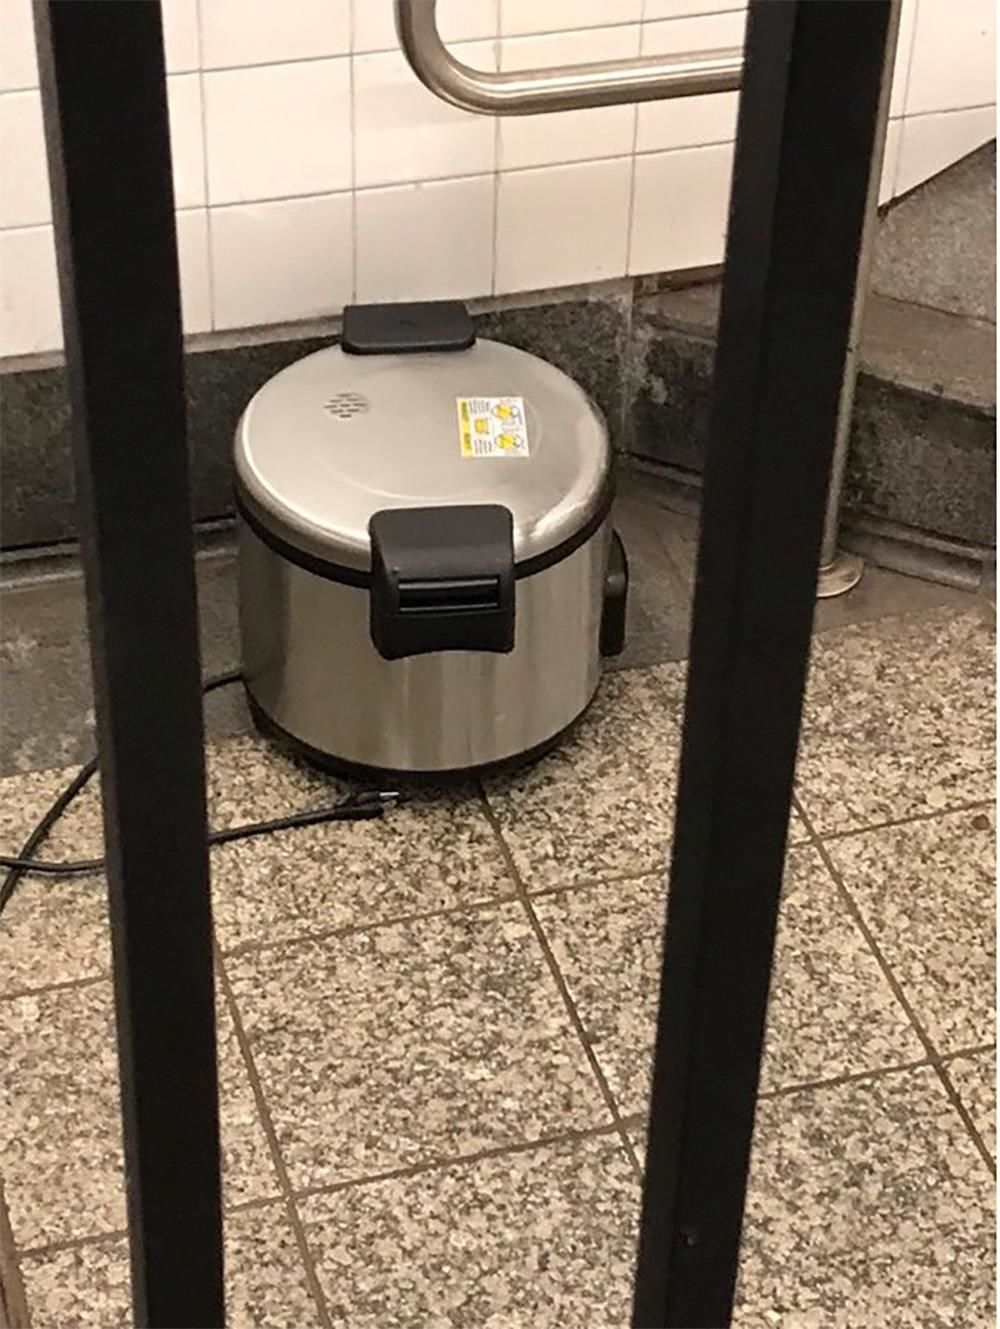 This photo provided by NYPD shows a suspicious object which looks like a pressure cooker or electric crockpot on the floor of the New York City Subway platform on Friday, Aug. 16, 2019 in New York. (NYPD via AP)